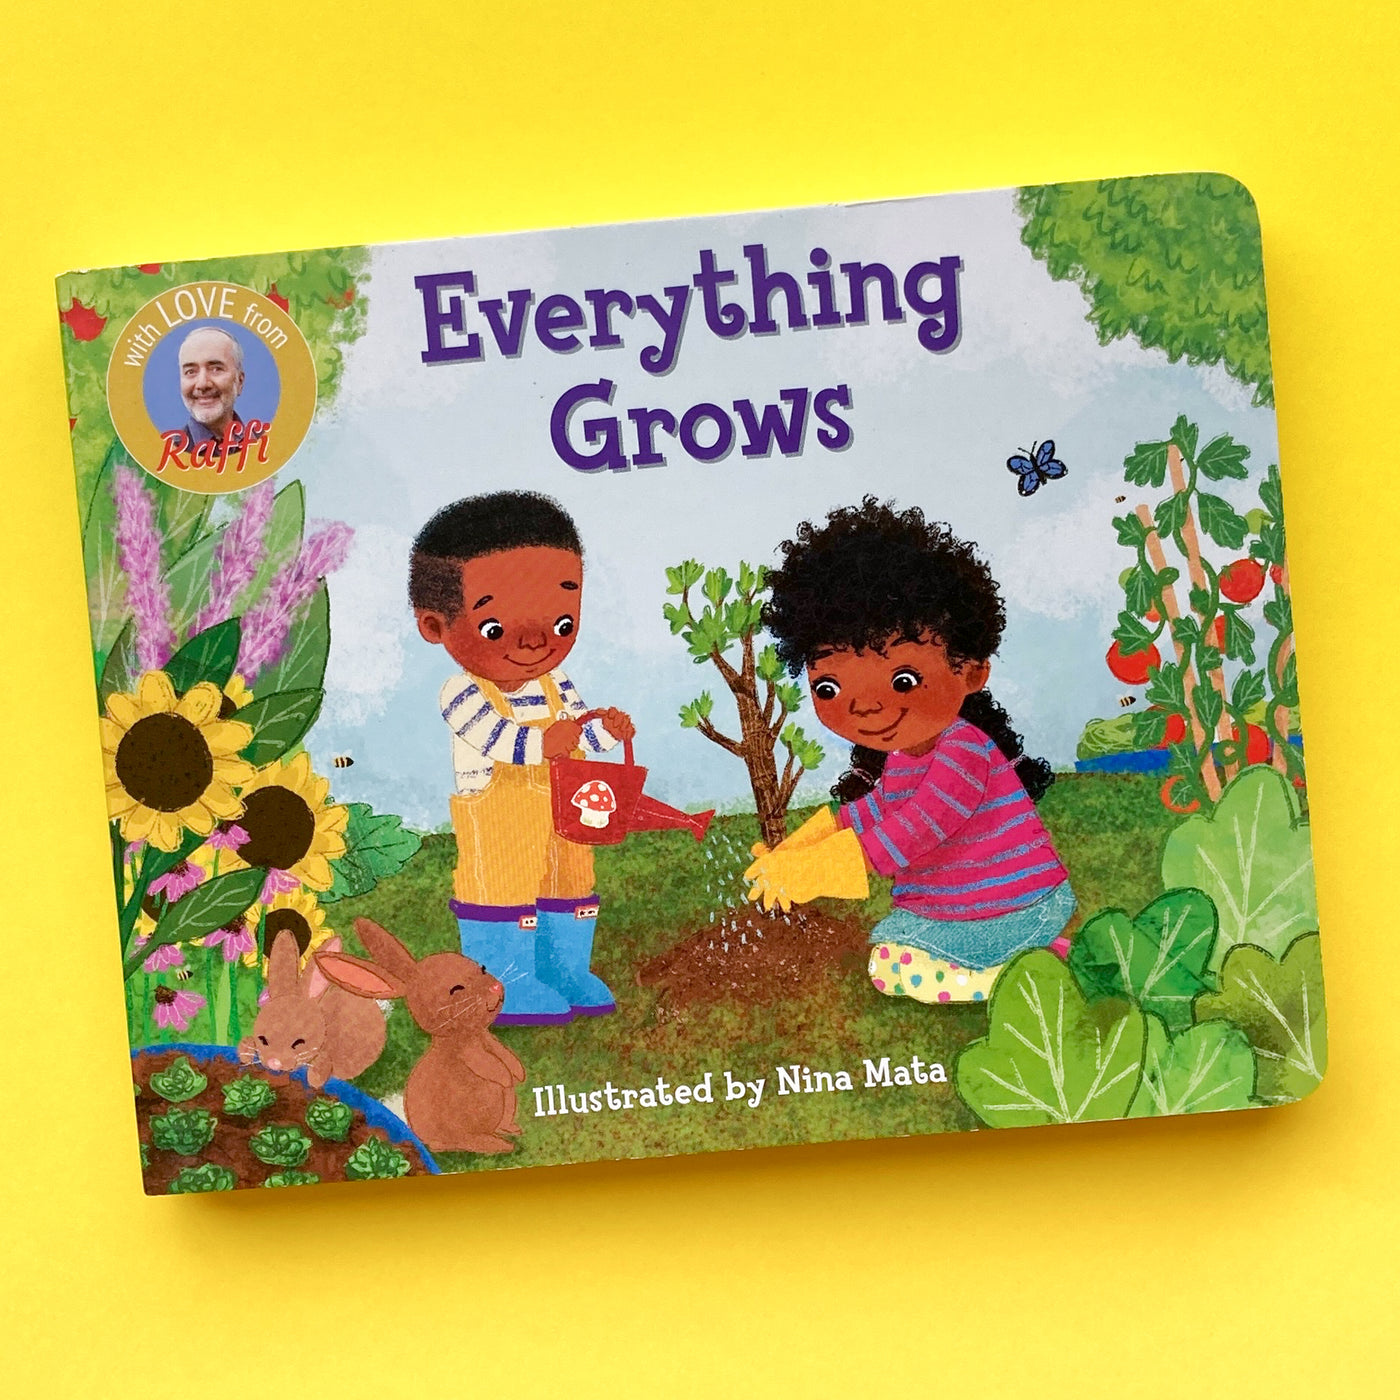 Everything Grows by Raffi; Illustrated by Nina Mata